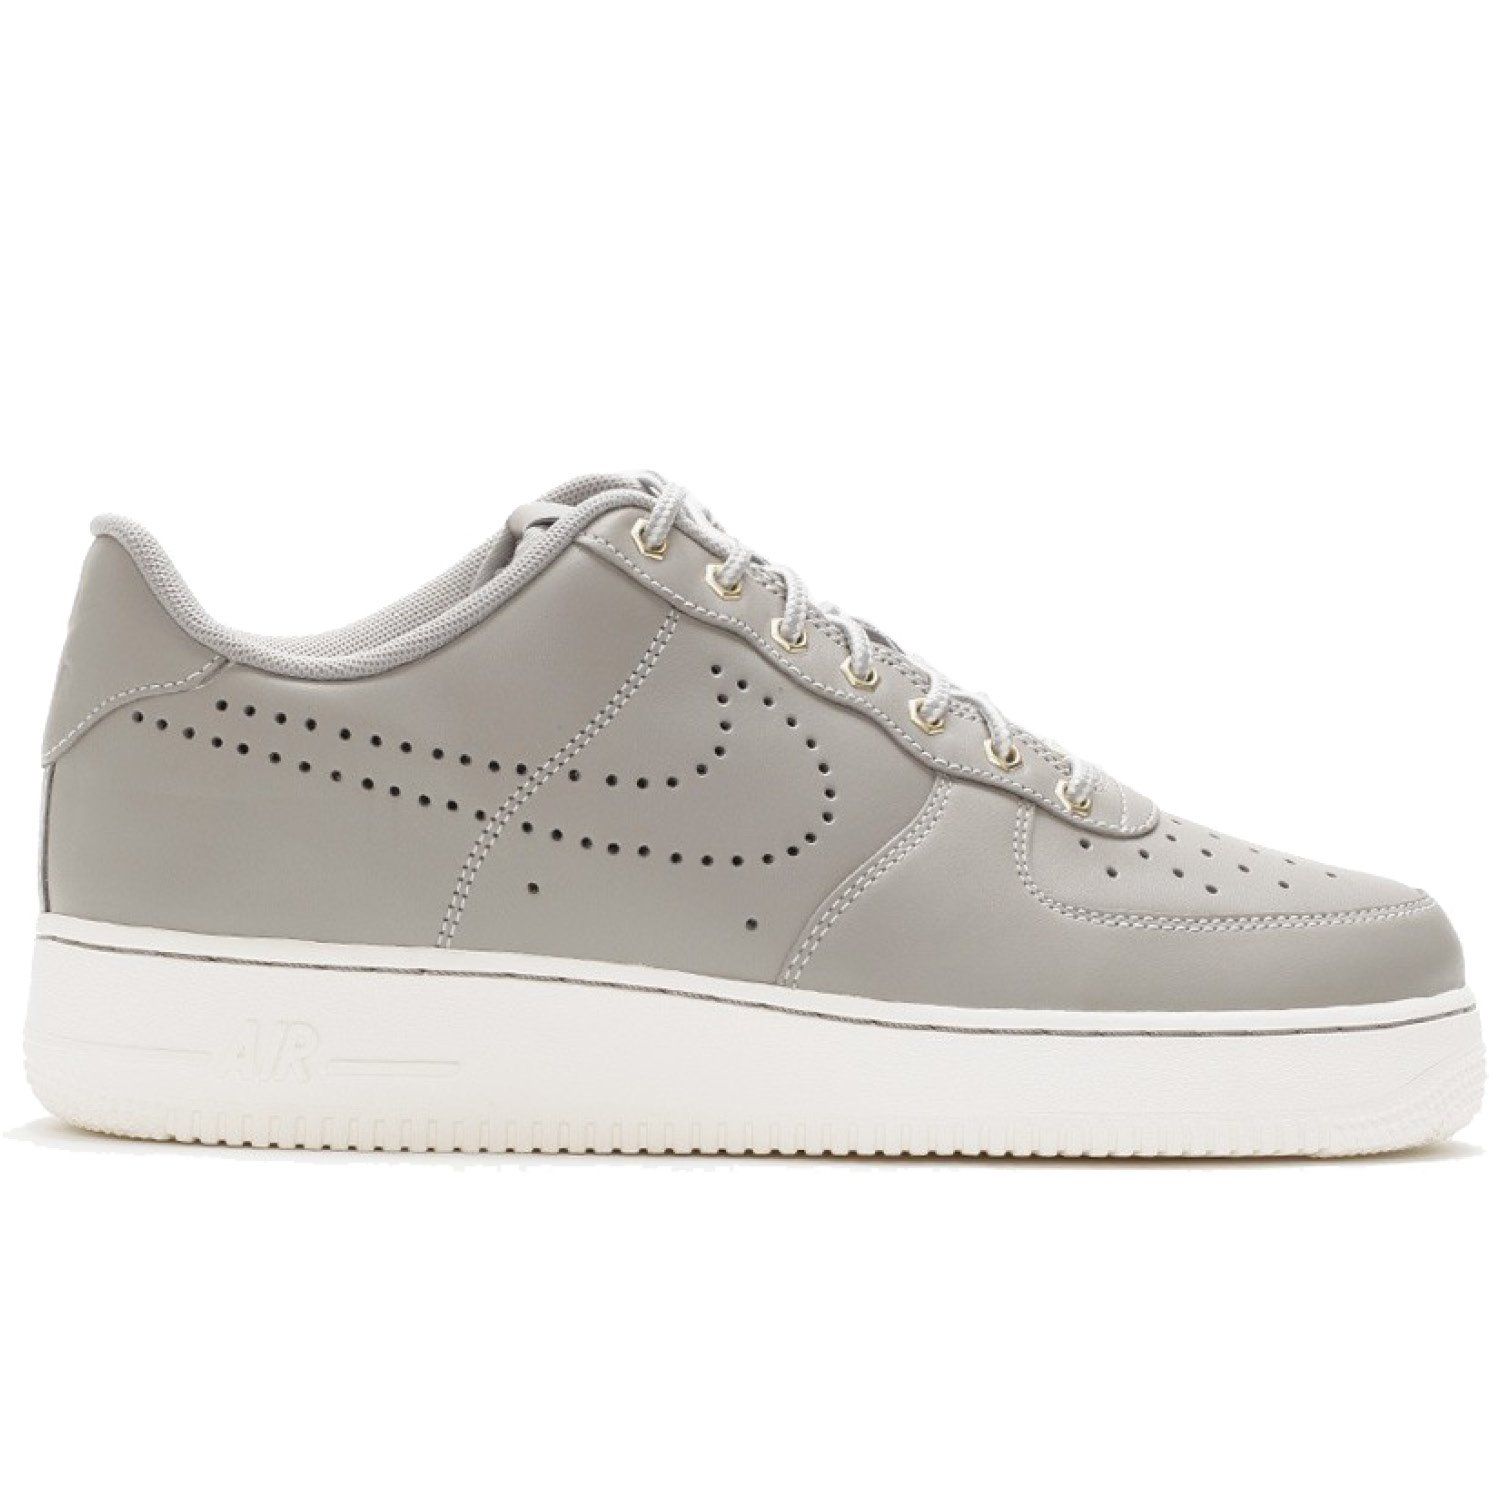 Nike Air Force 1 '07 LV8 WB Medium Grey 882095 002